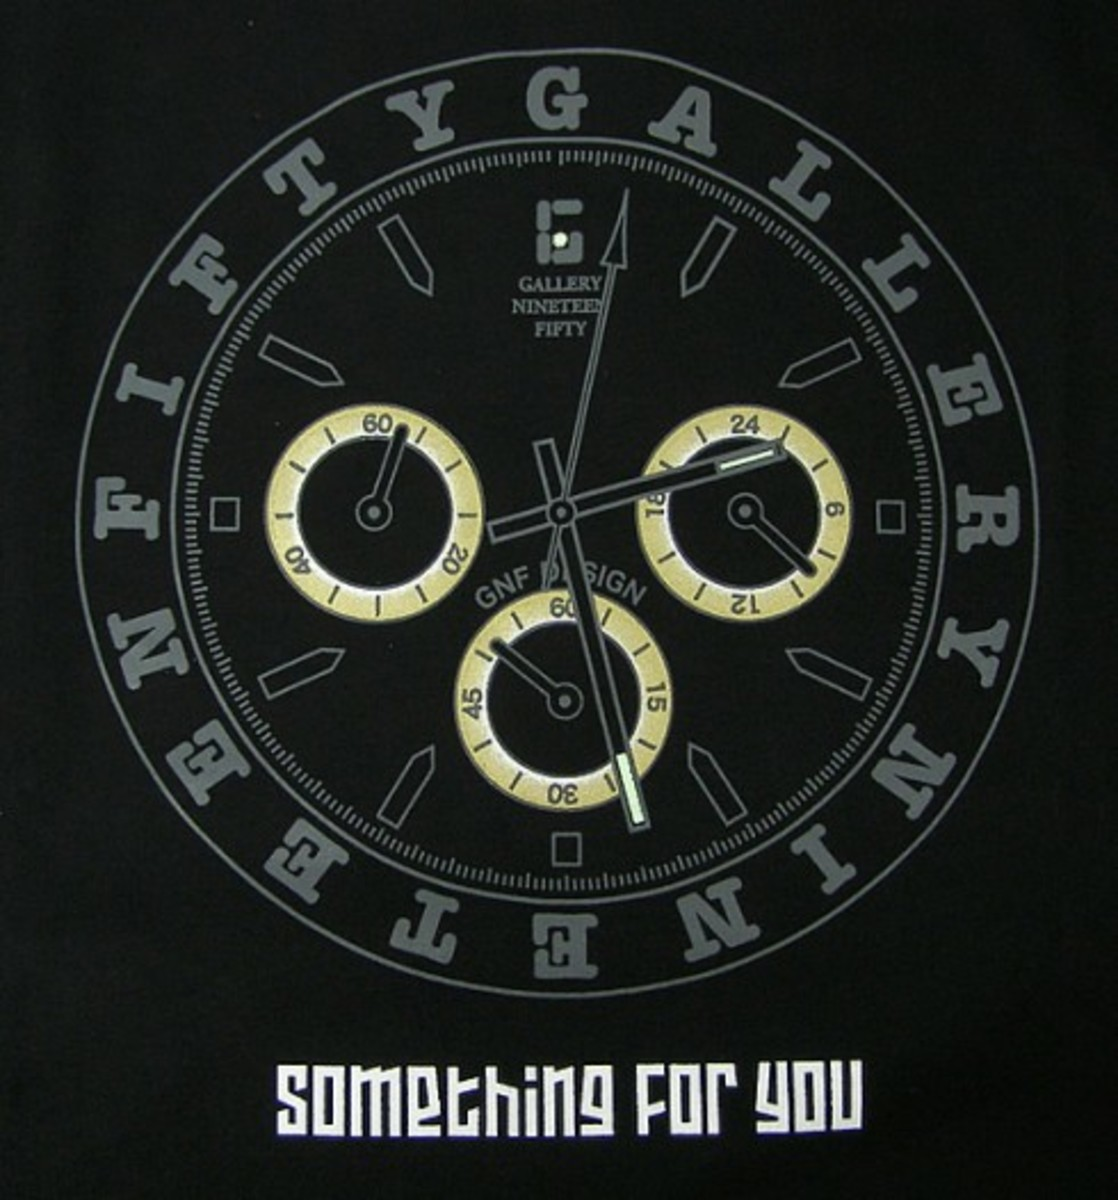 Gallery1950 x Metertee - Something For You T-Shirt